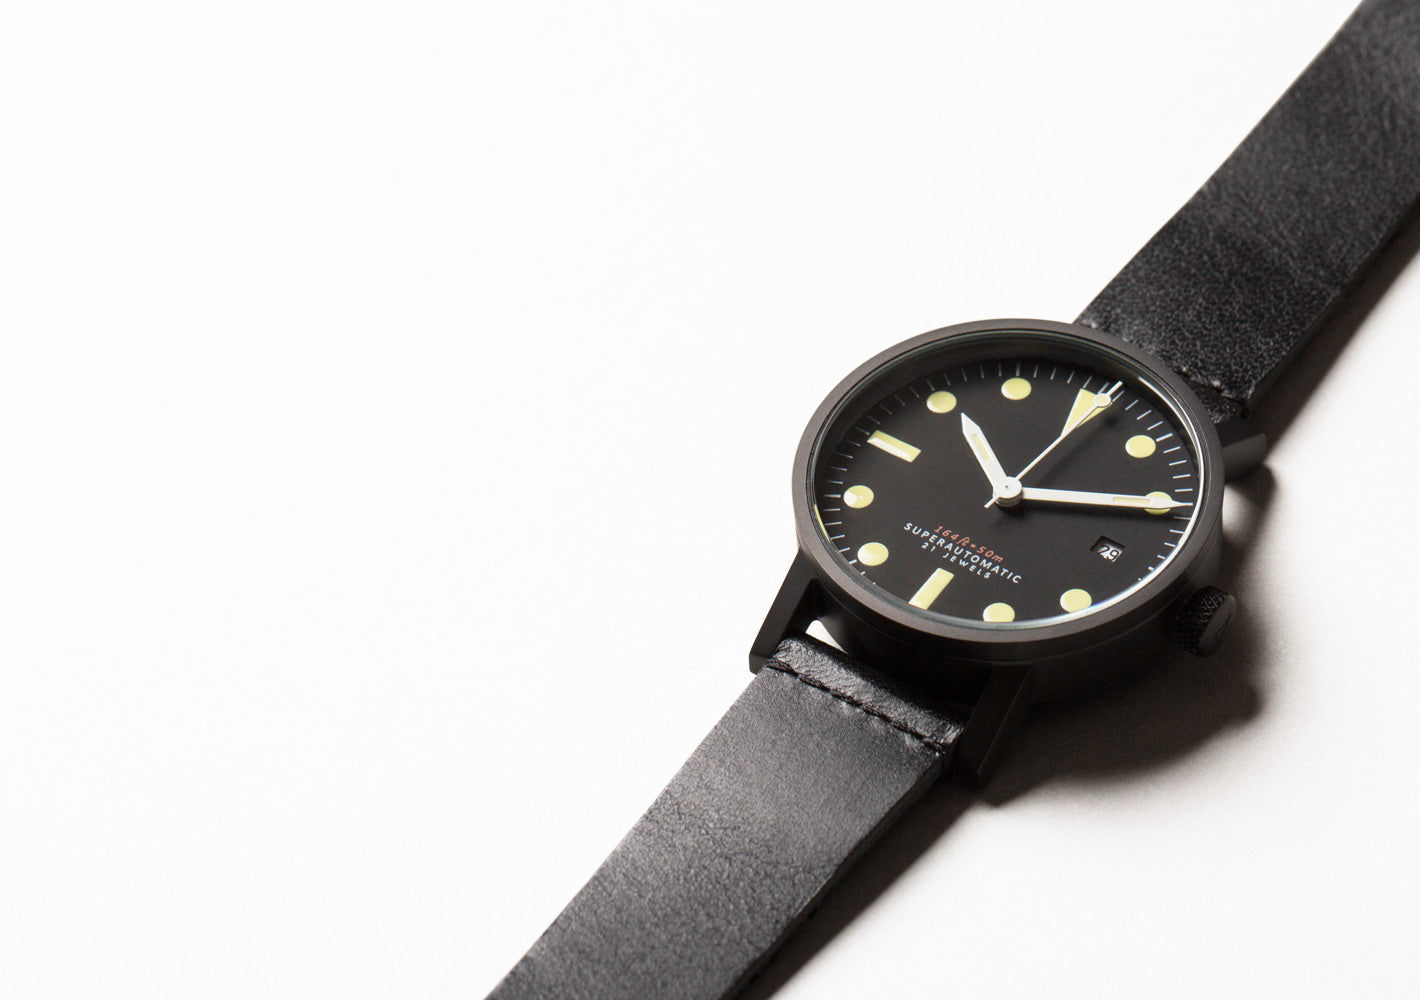 The V03M-BL/TB from VOID Watches, designed by David Ericsson.